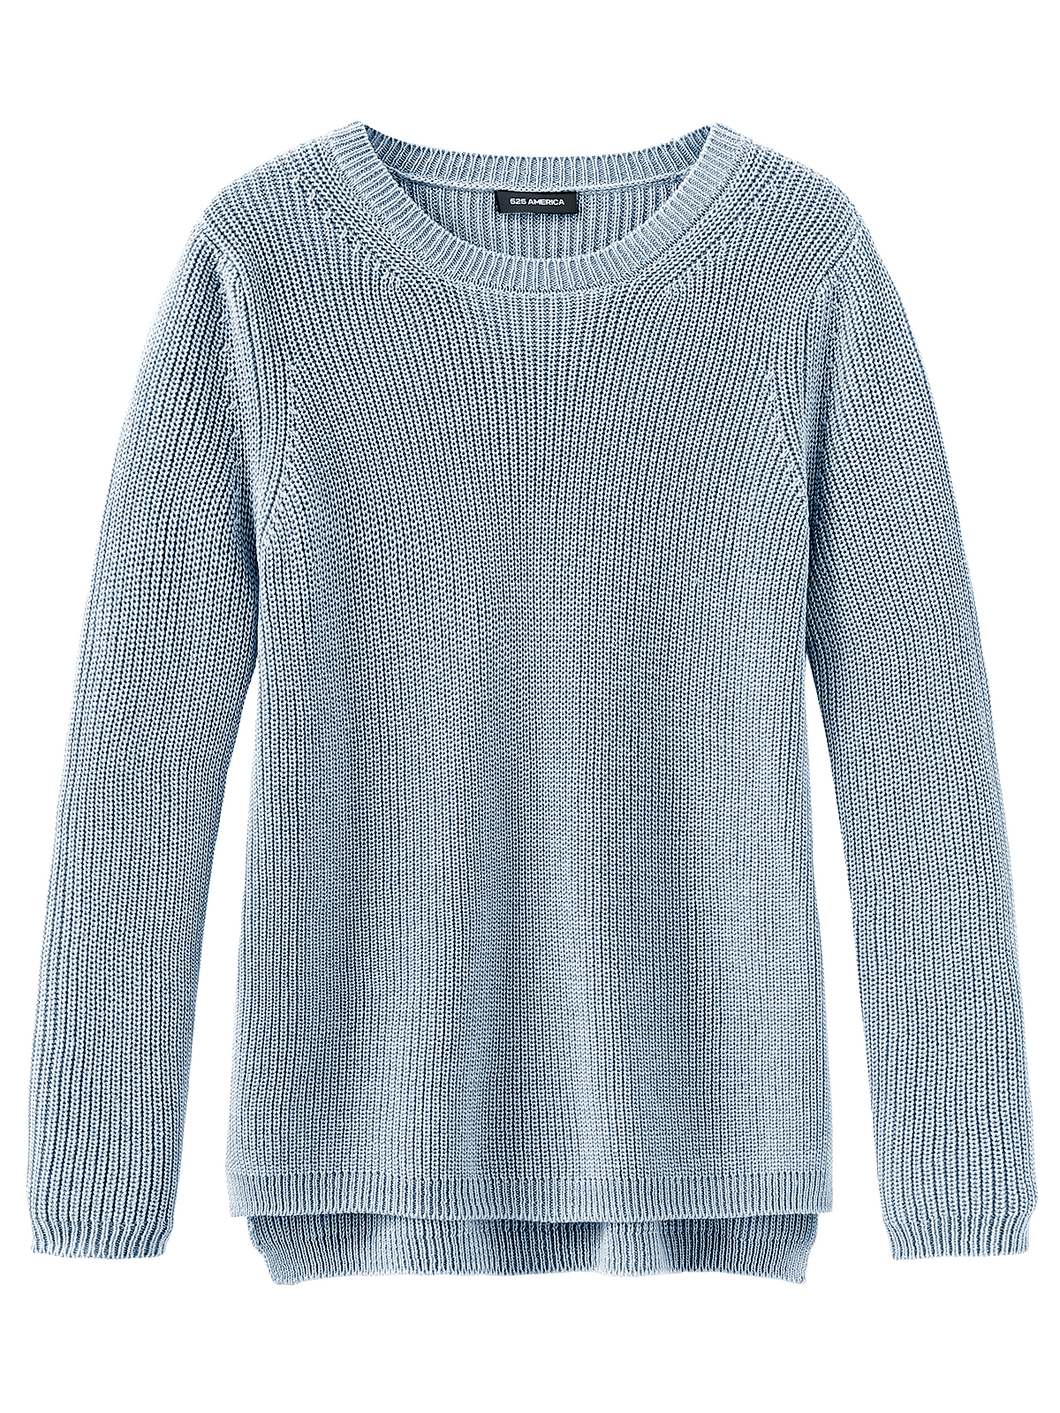 Emma Cotton Shaker Sweater in Ice Blue by 525 America